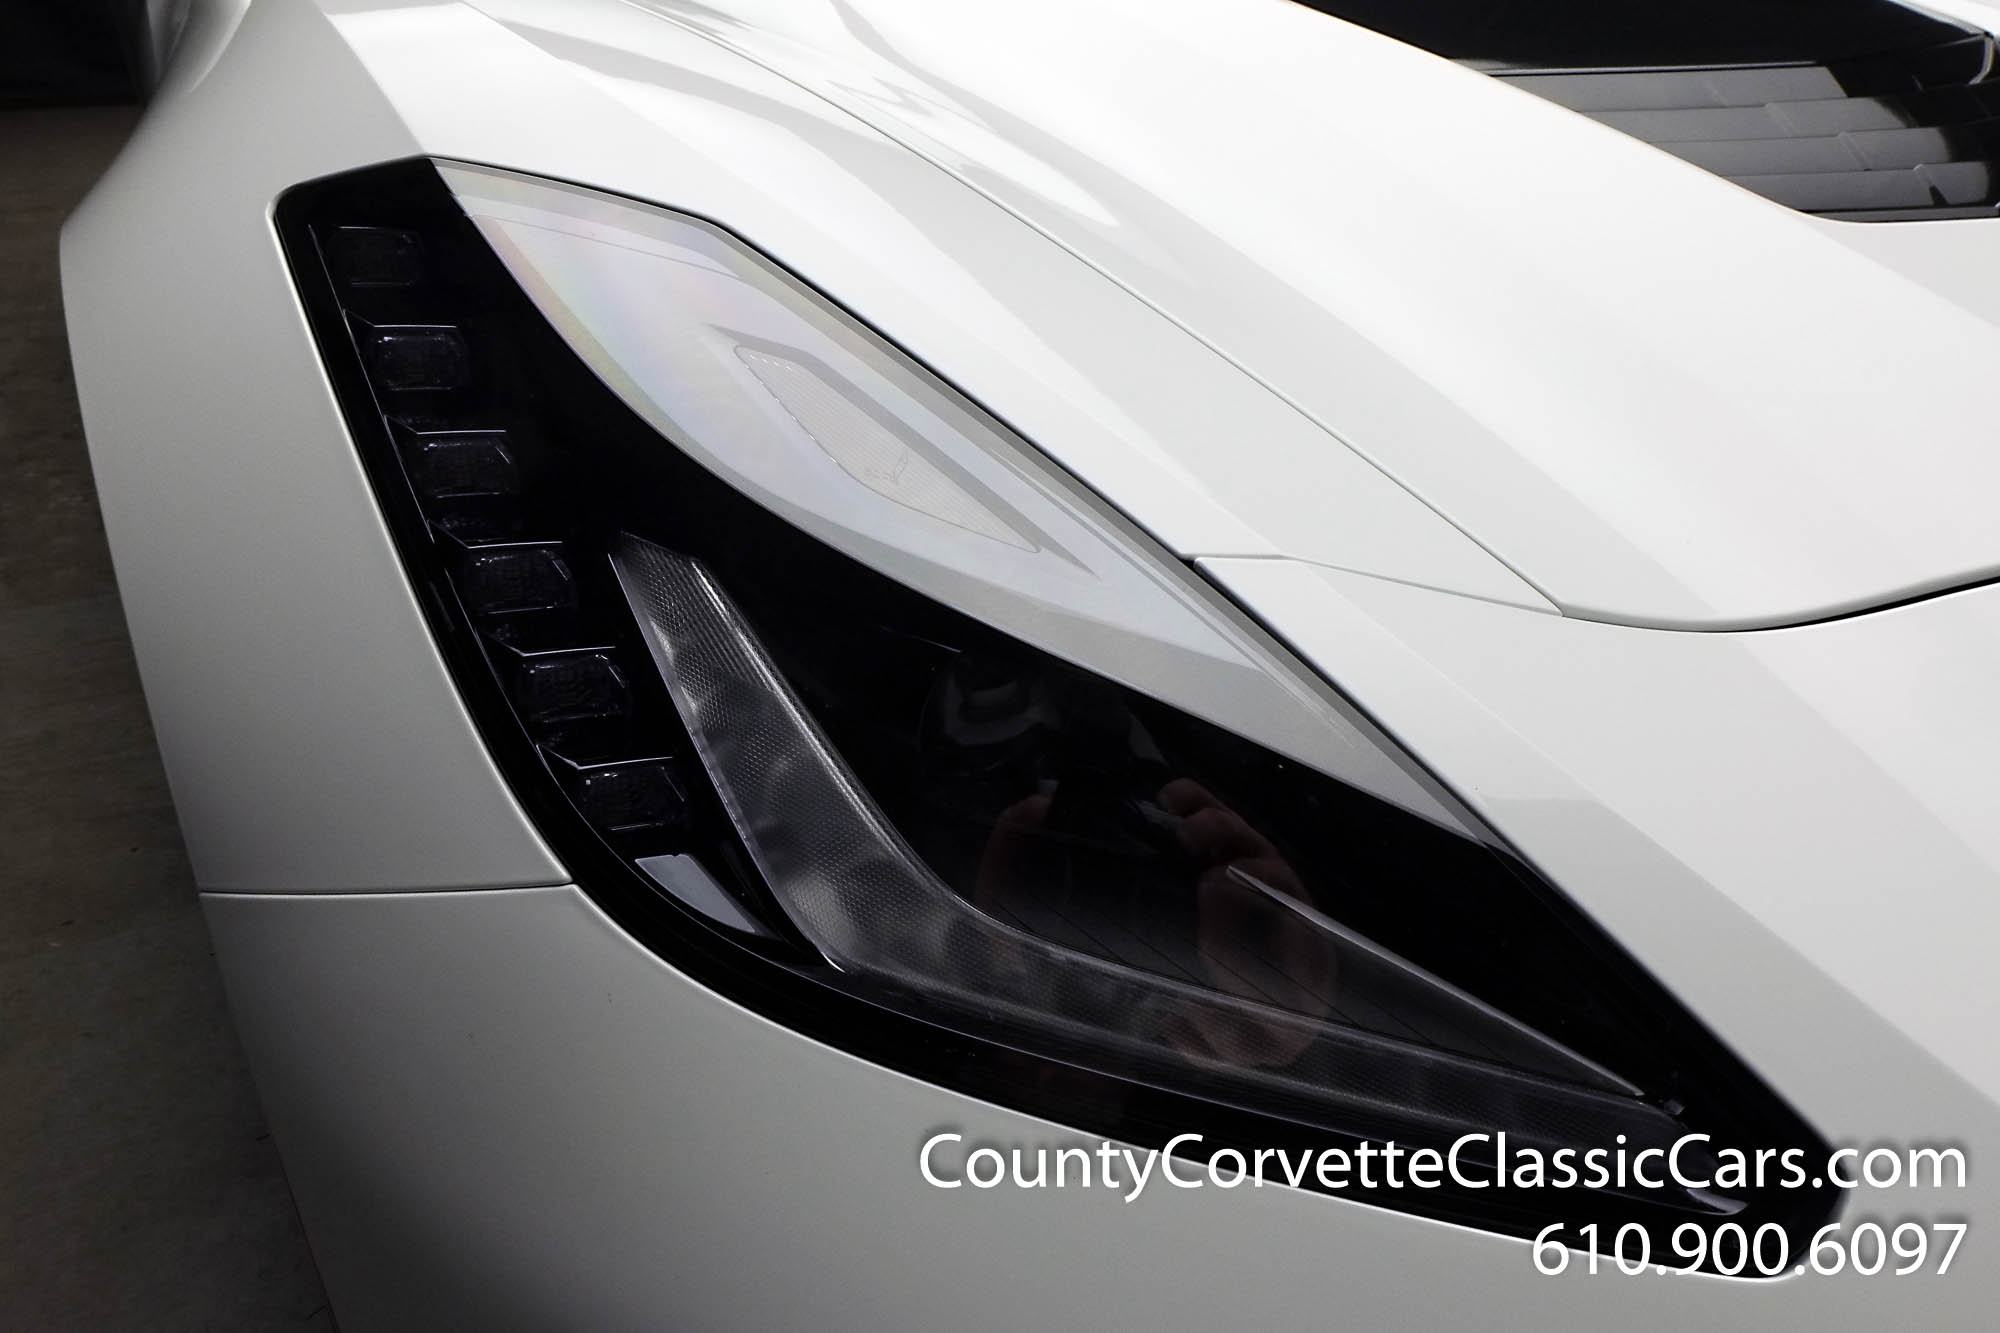 2014-Corvette-Stingray-Convertible-14.jpg